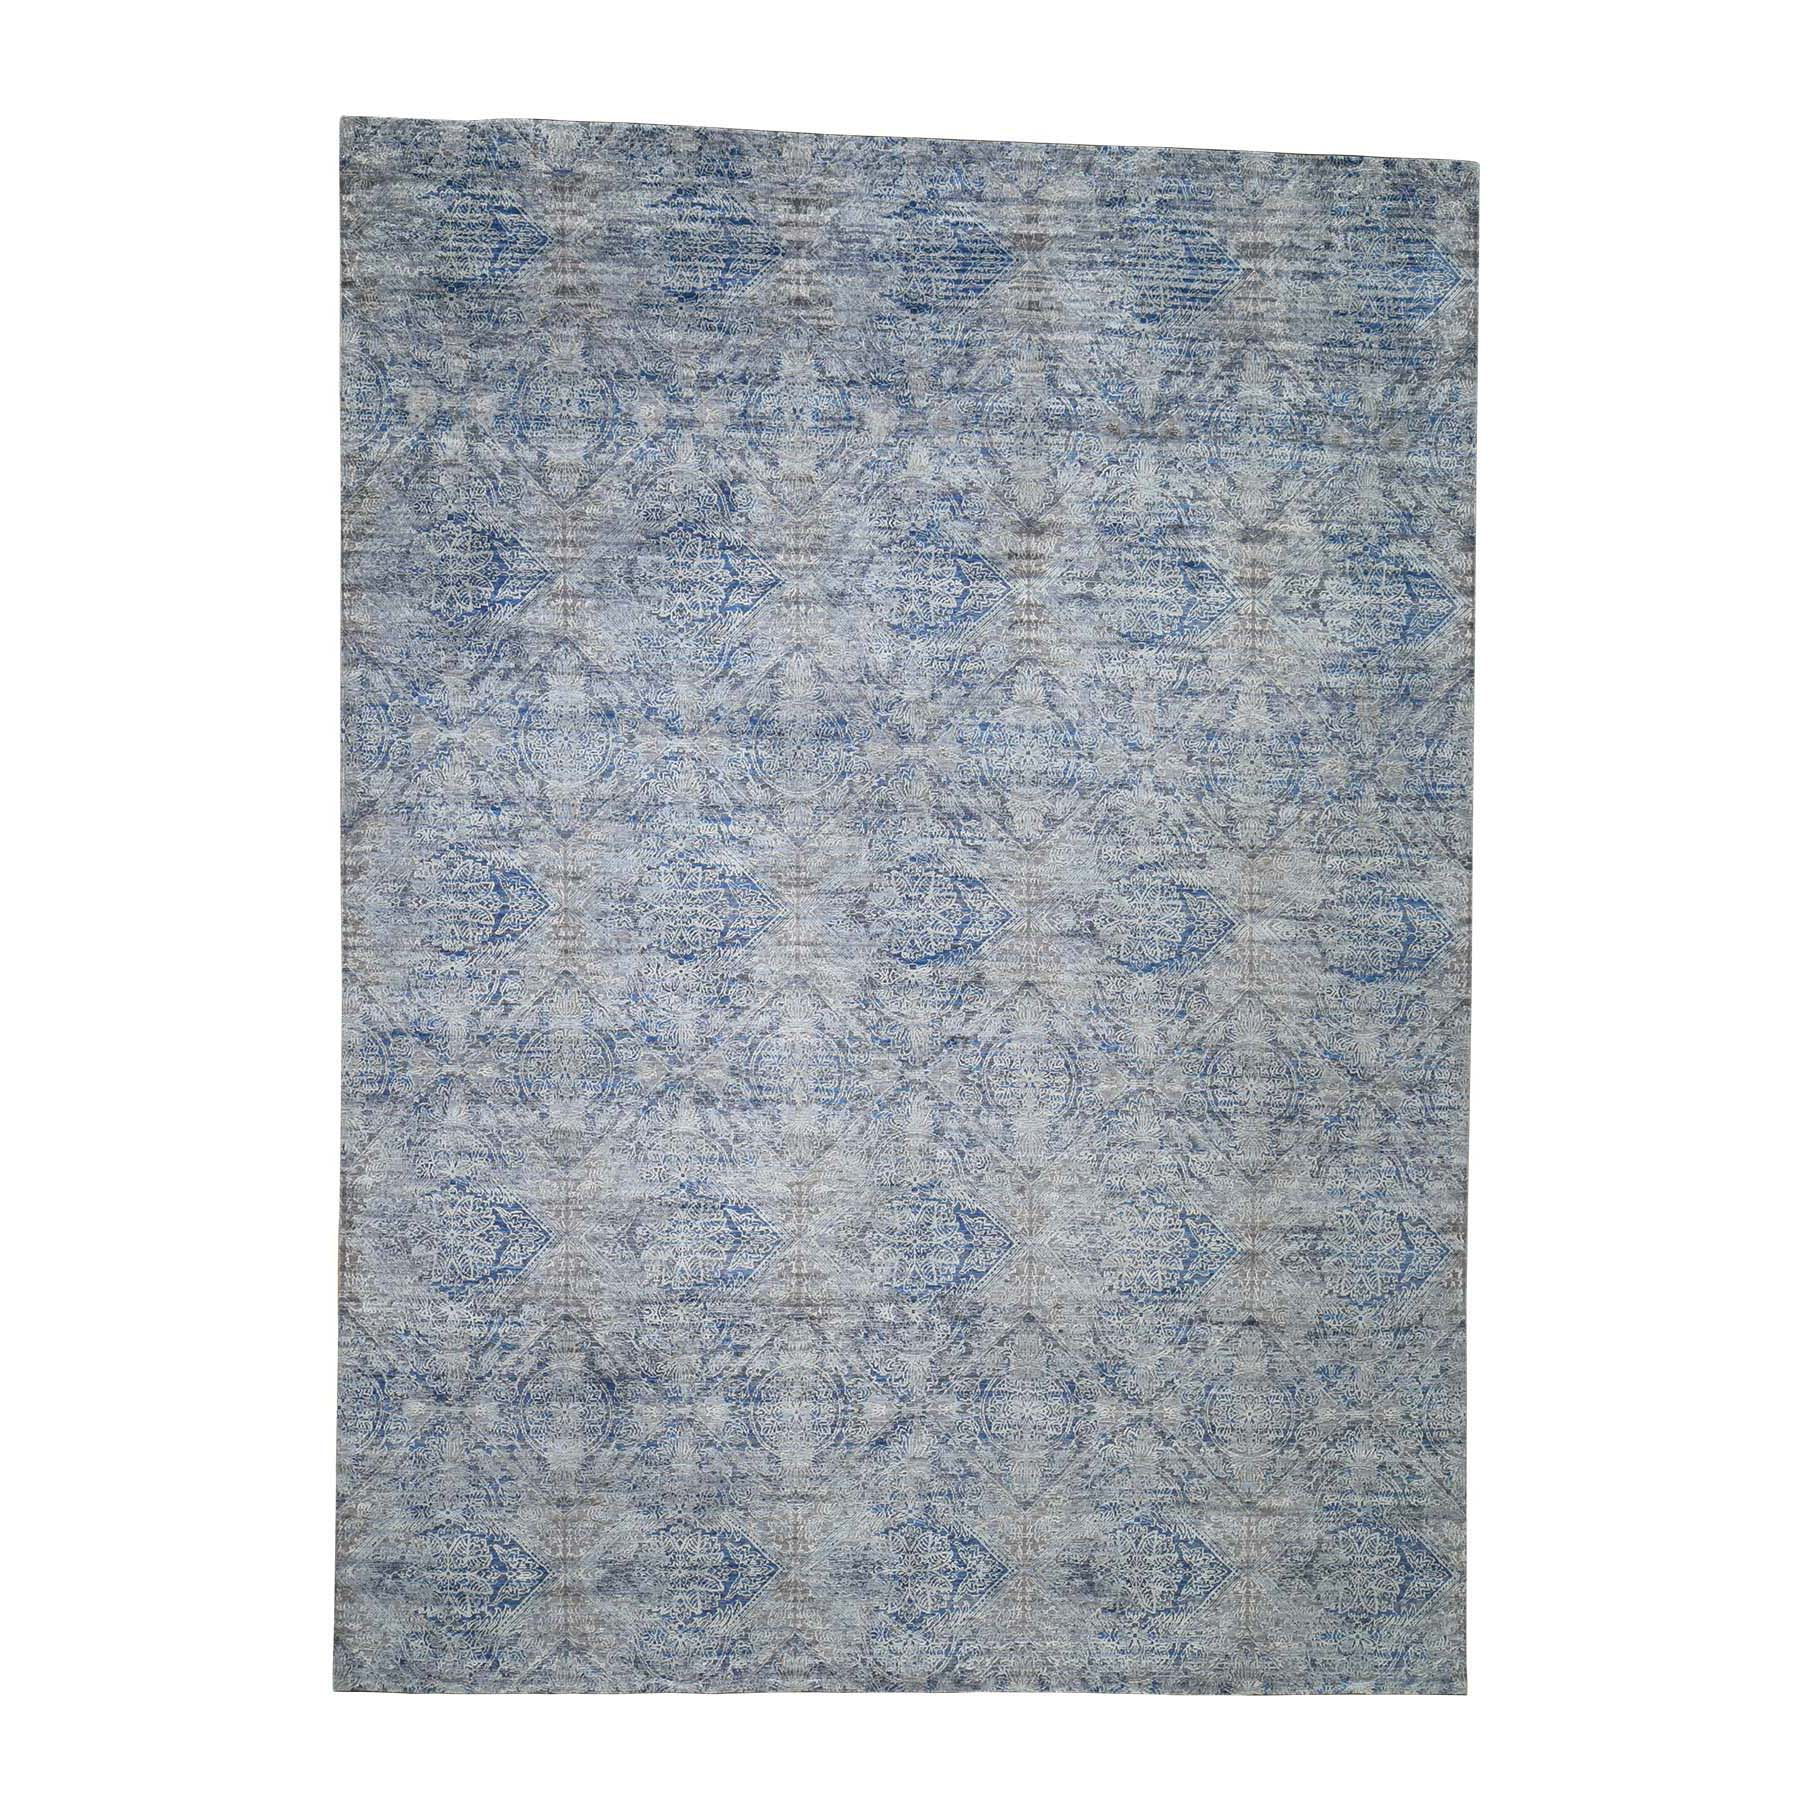 "8'9""x12' Silk With Textured Wool Denim Blue Erased Rossette Design Hand-Knotted Oriental Rug"